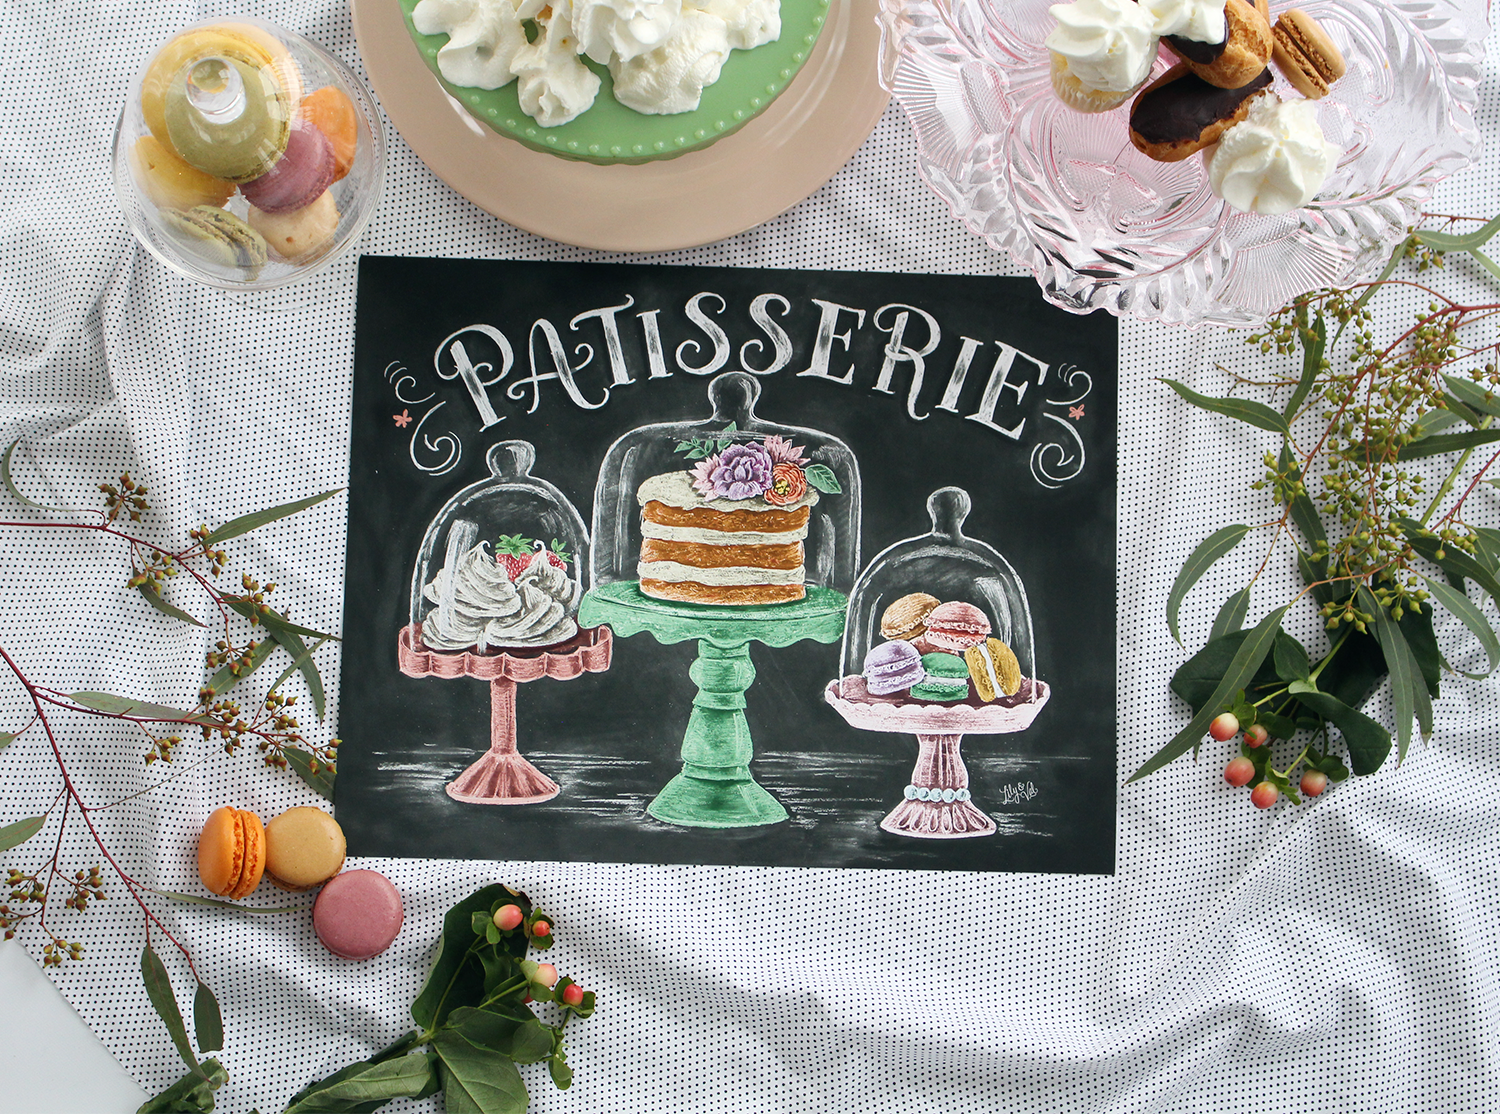 The Patisseries in France inspired this hand-illustrated chalkboard design as part of the Lily & Val Spring Print Collection